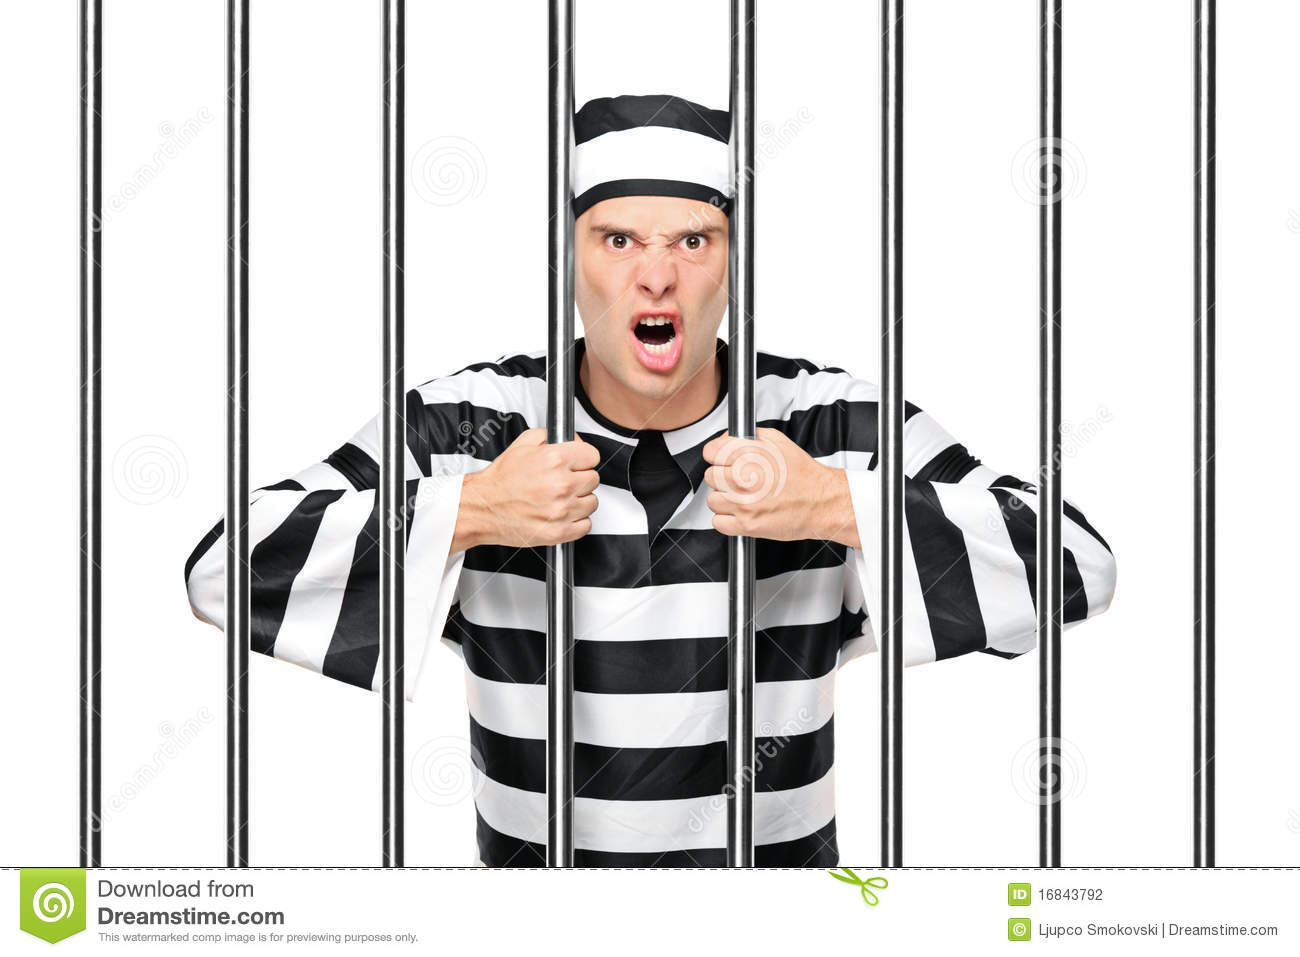 An agitated prisoner in jail holding bars stock photo image 16843792 - Picture of bars ...